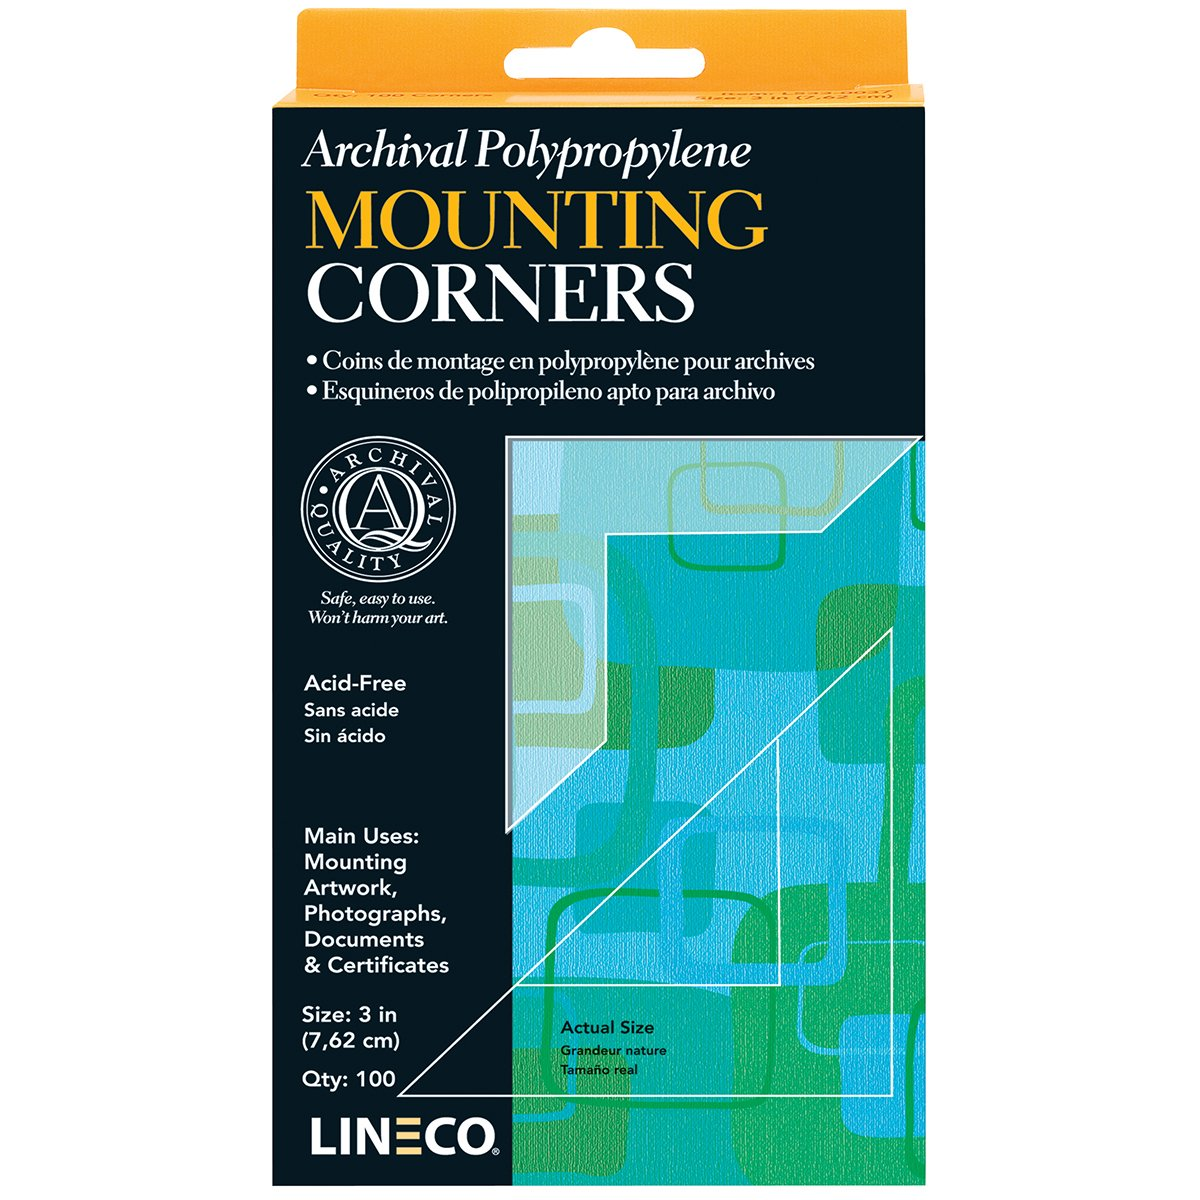 Lineco Self-Adhesive Polypropylene Mounting Corners, Full View, 3 inches, Package of 100 (L533-0037)